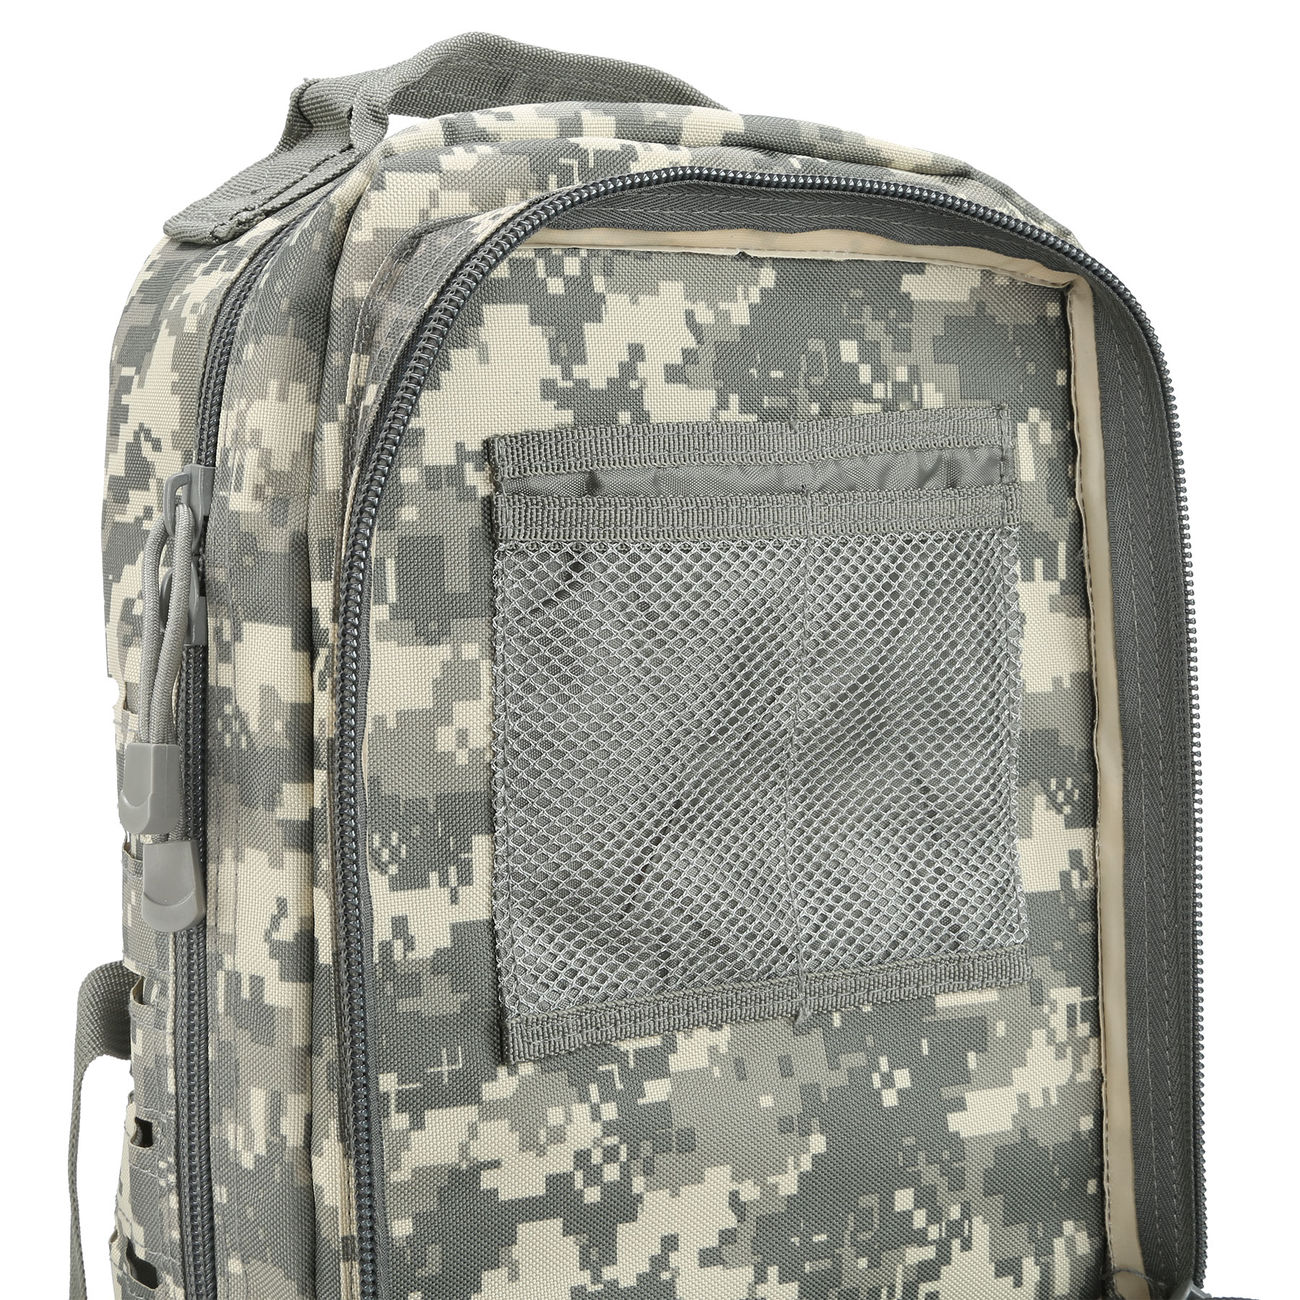 MFH Rucksack US Assault I Laser 30L AT-digital 9